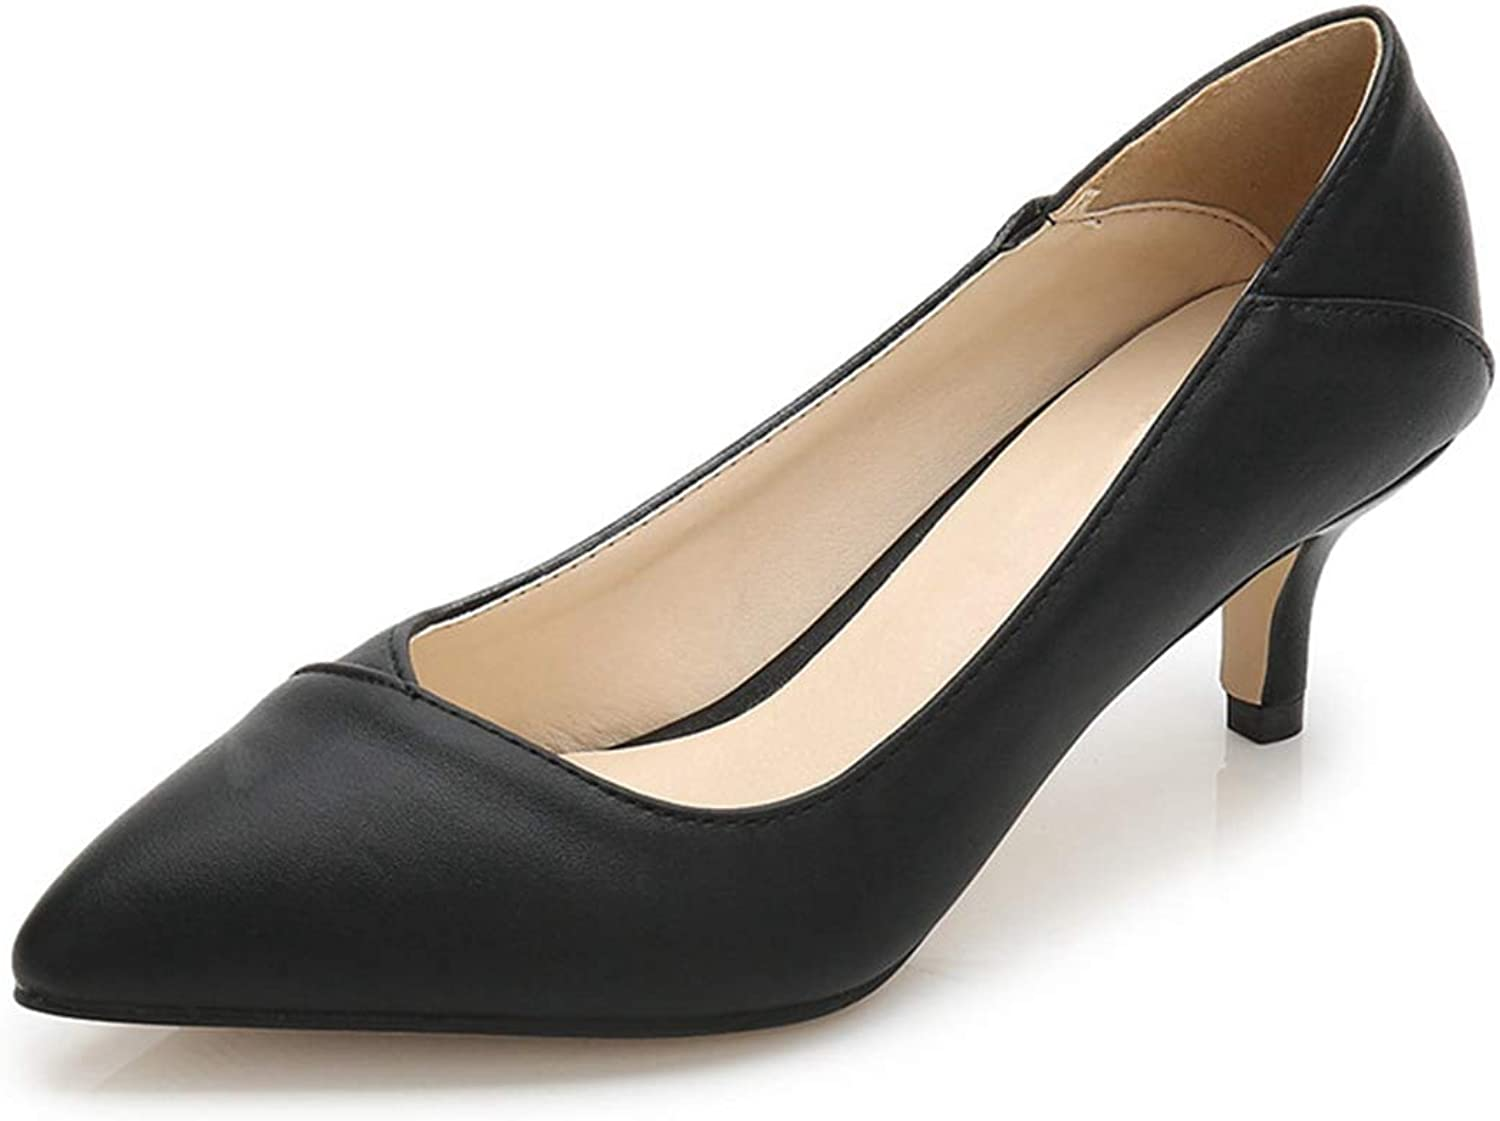 Owen Moll Women Pumps, Sexy Pointed Toe Leather Thin Med High Heel Bride Party shoes